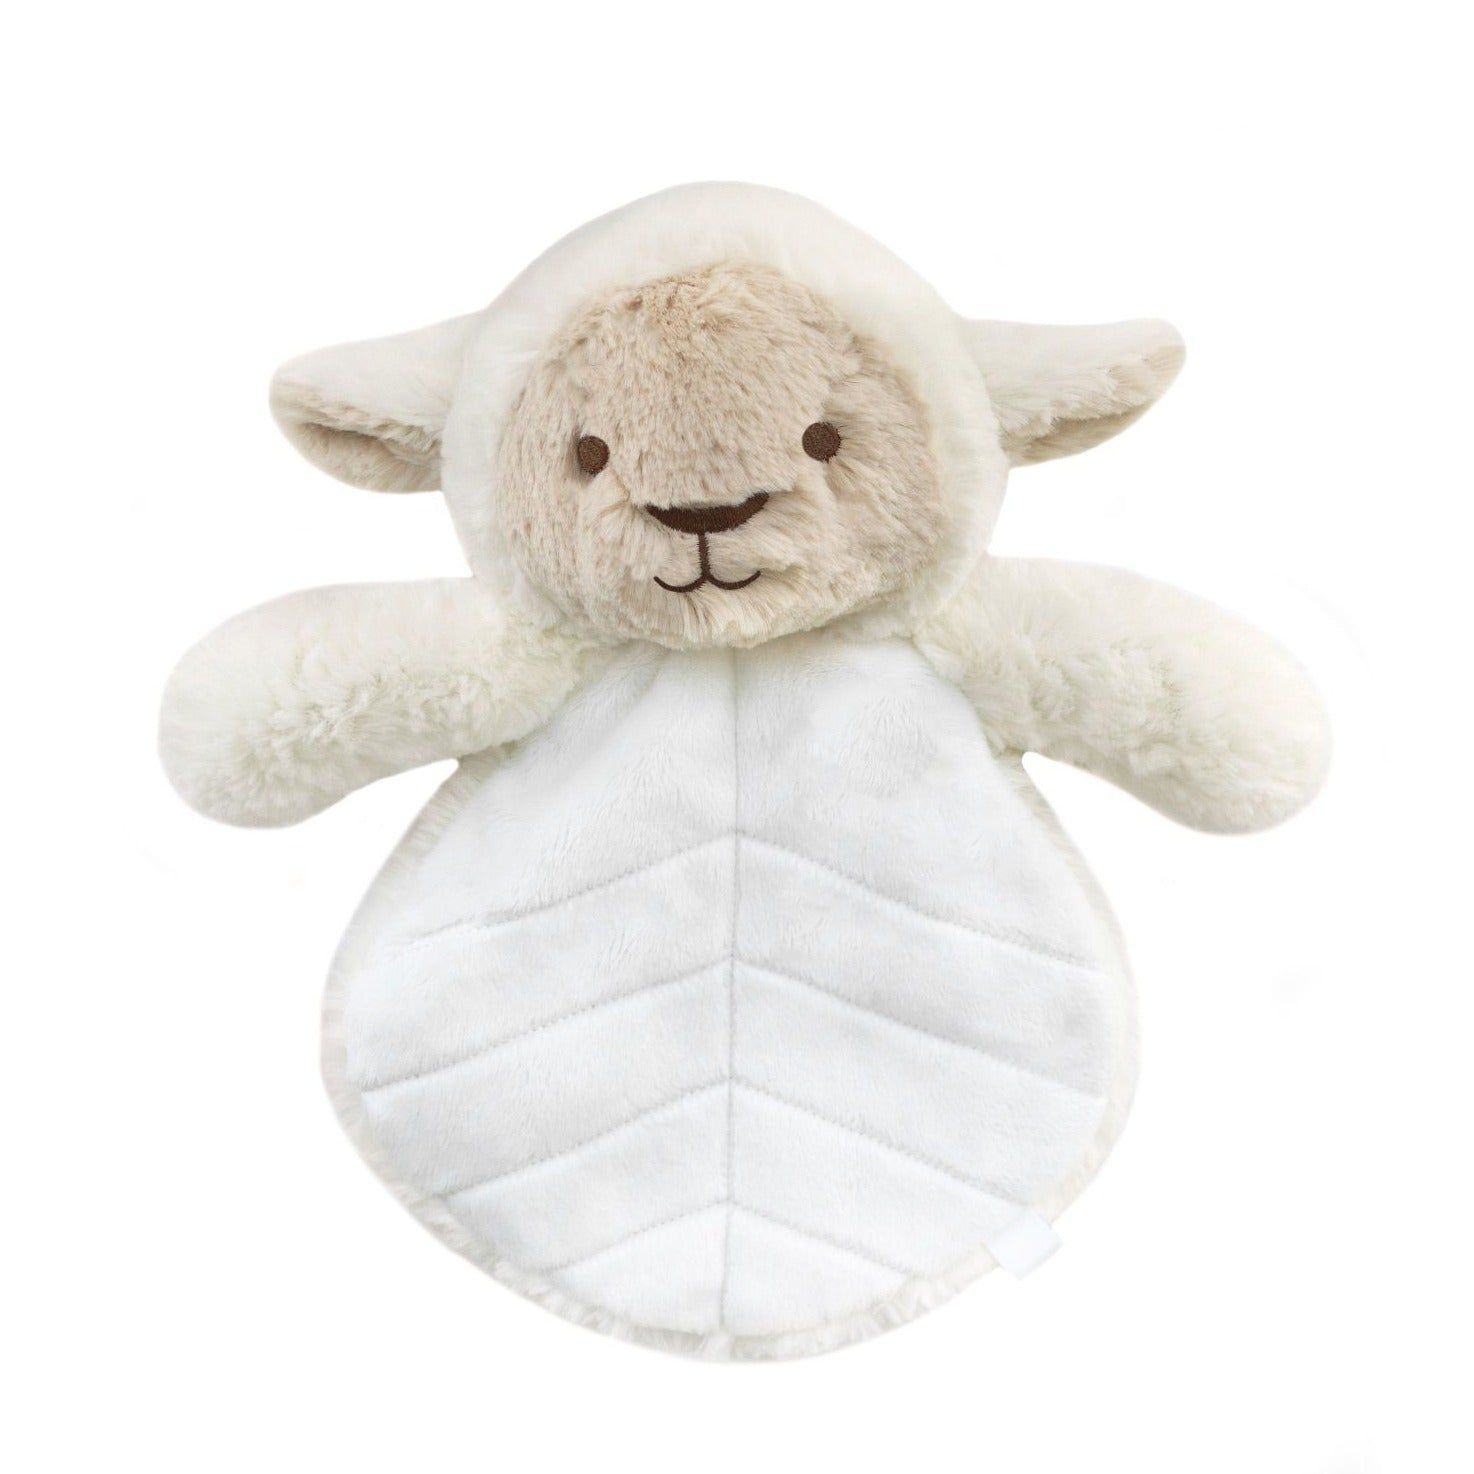 O.B. Designs: Lee Lamb Baby Lovey